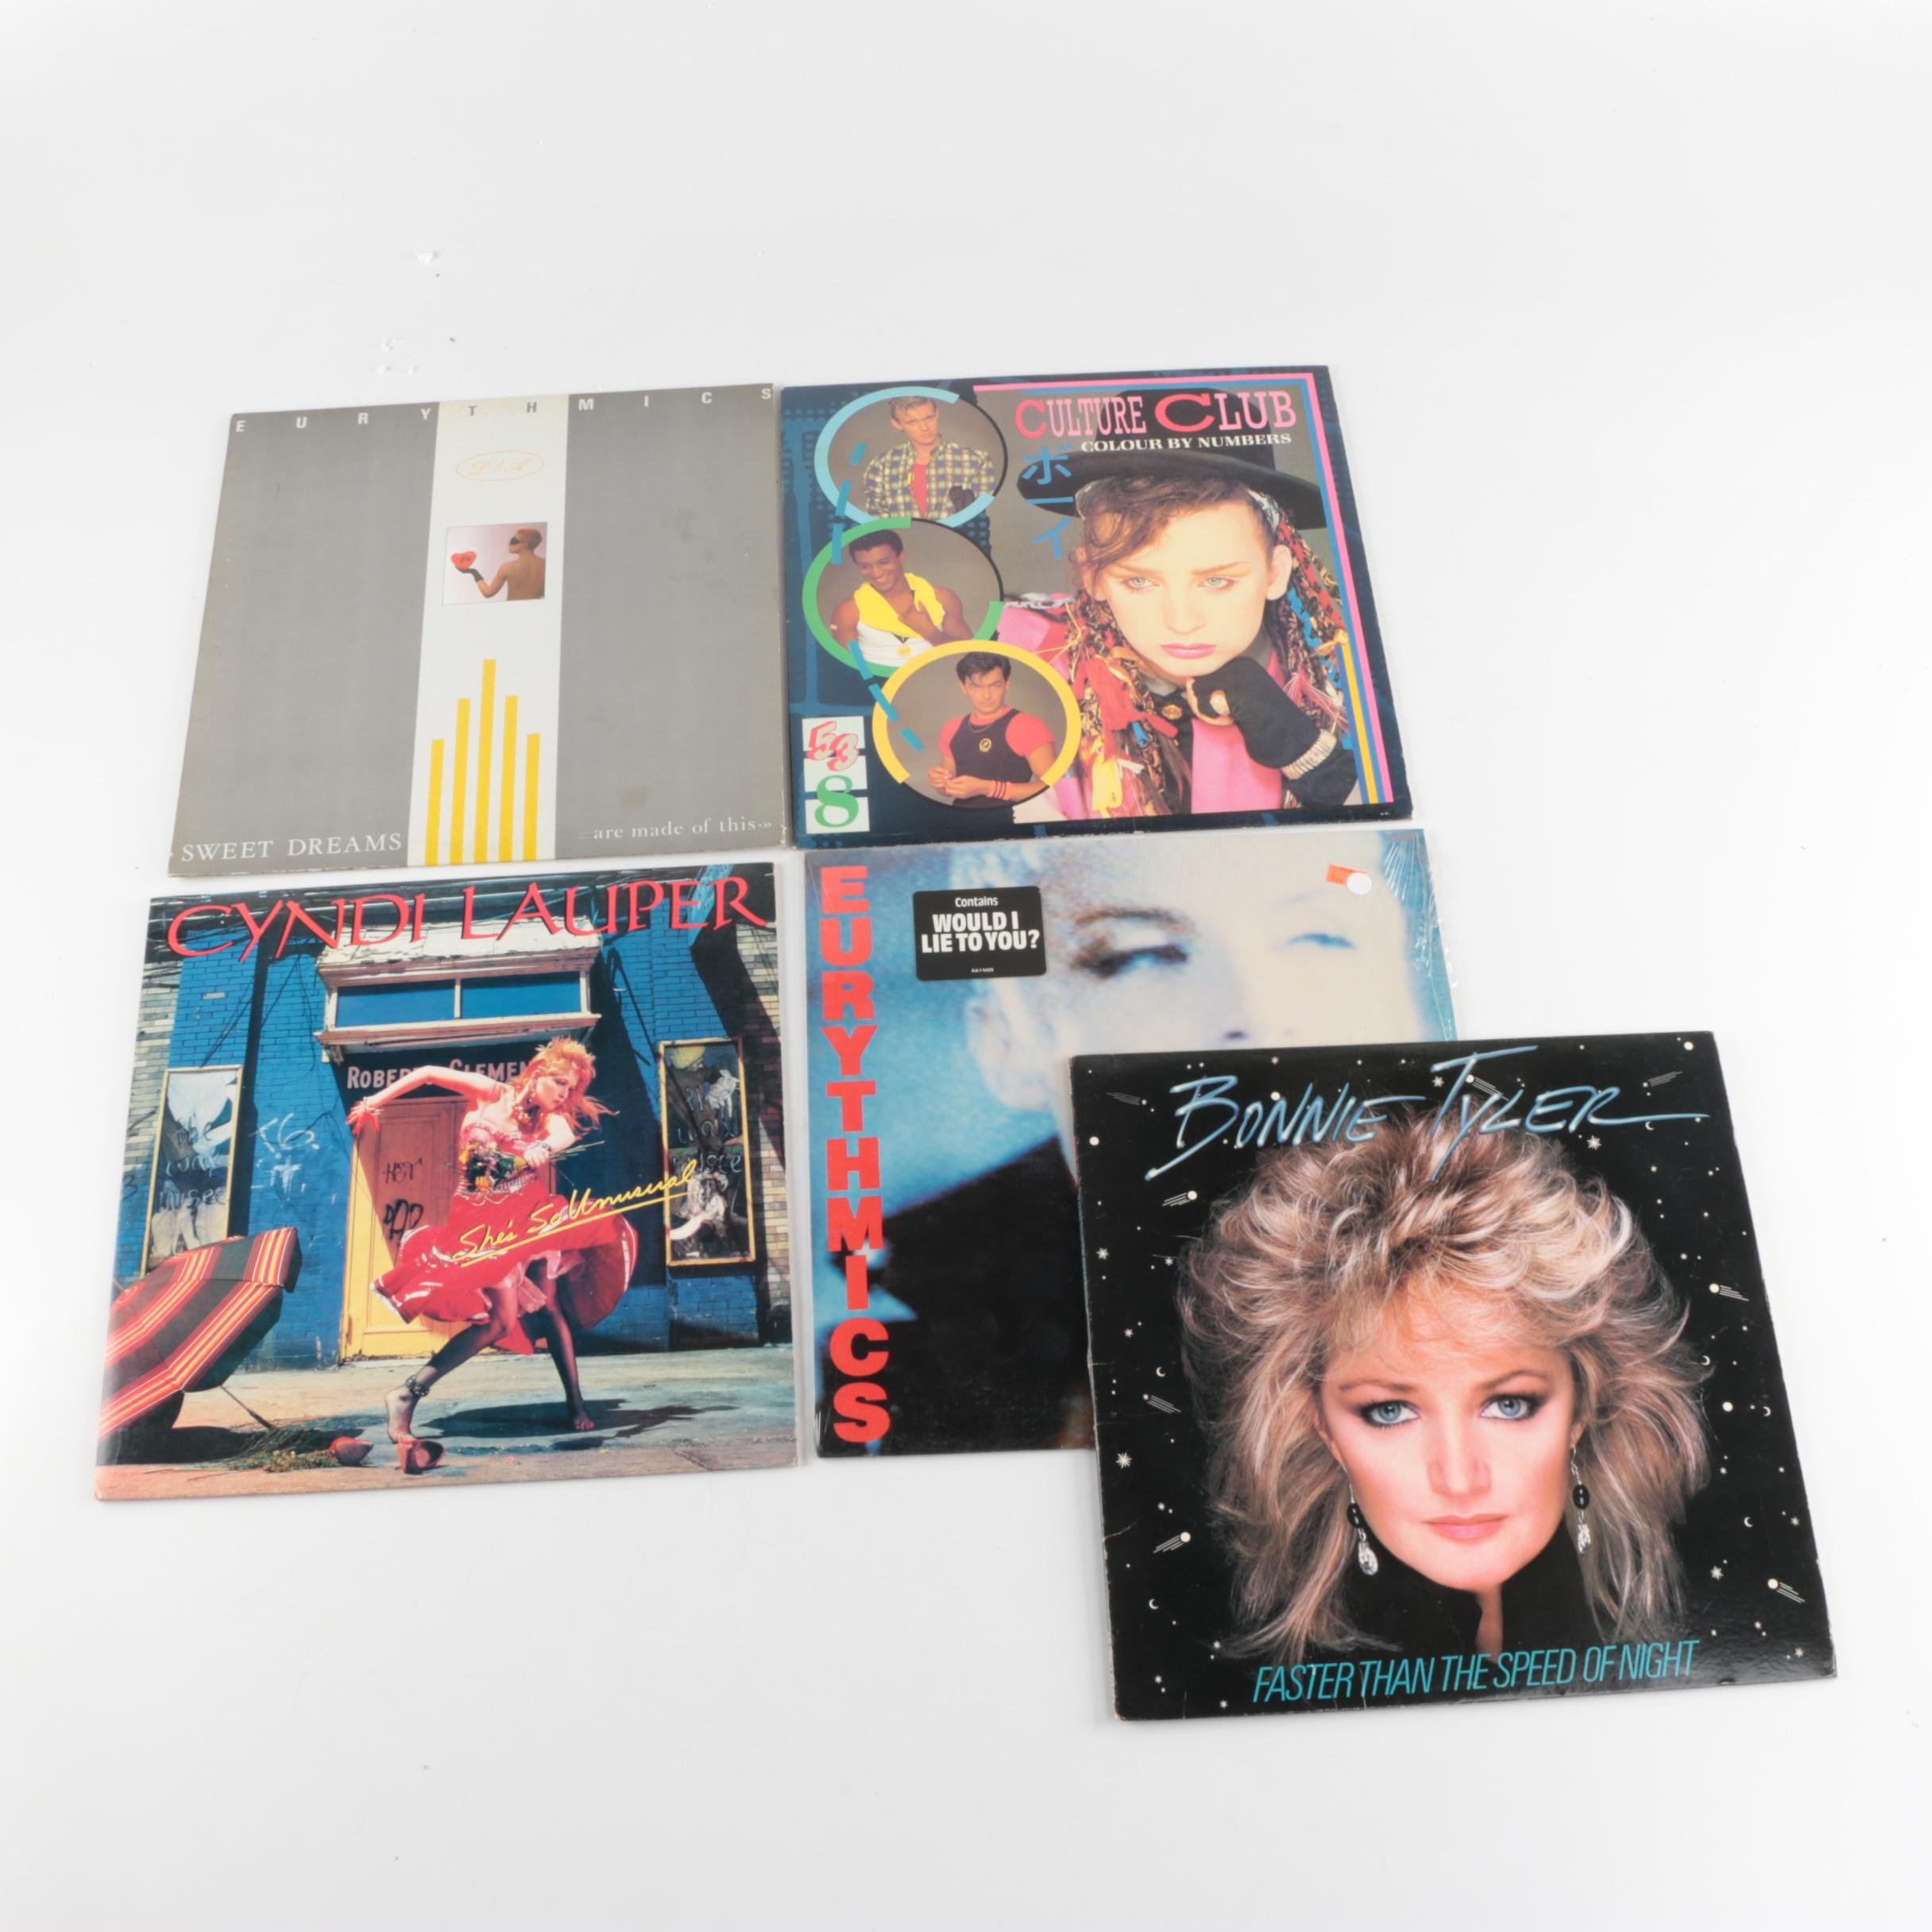 Five 1980s Records including Eurythmics and Cyndi Lauper